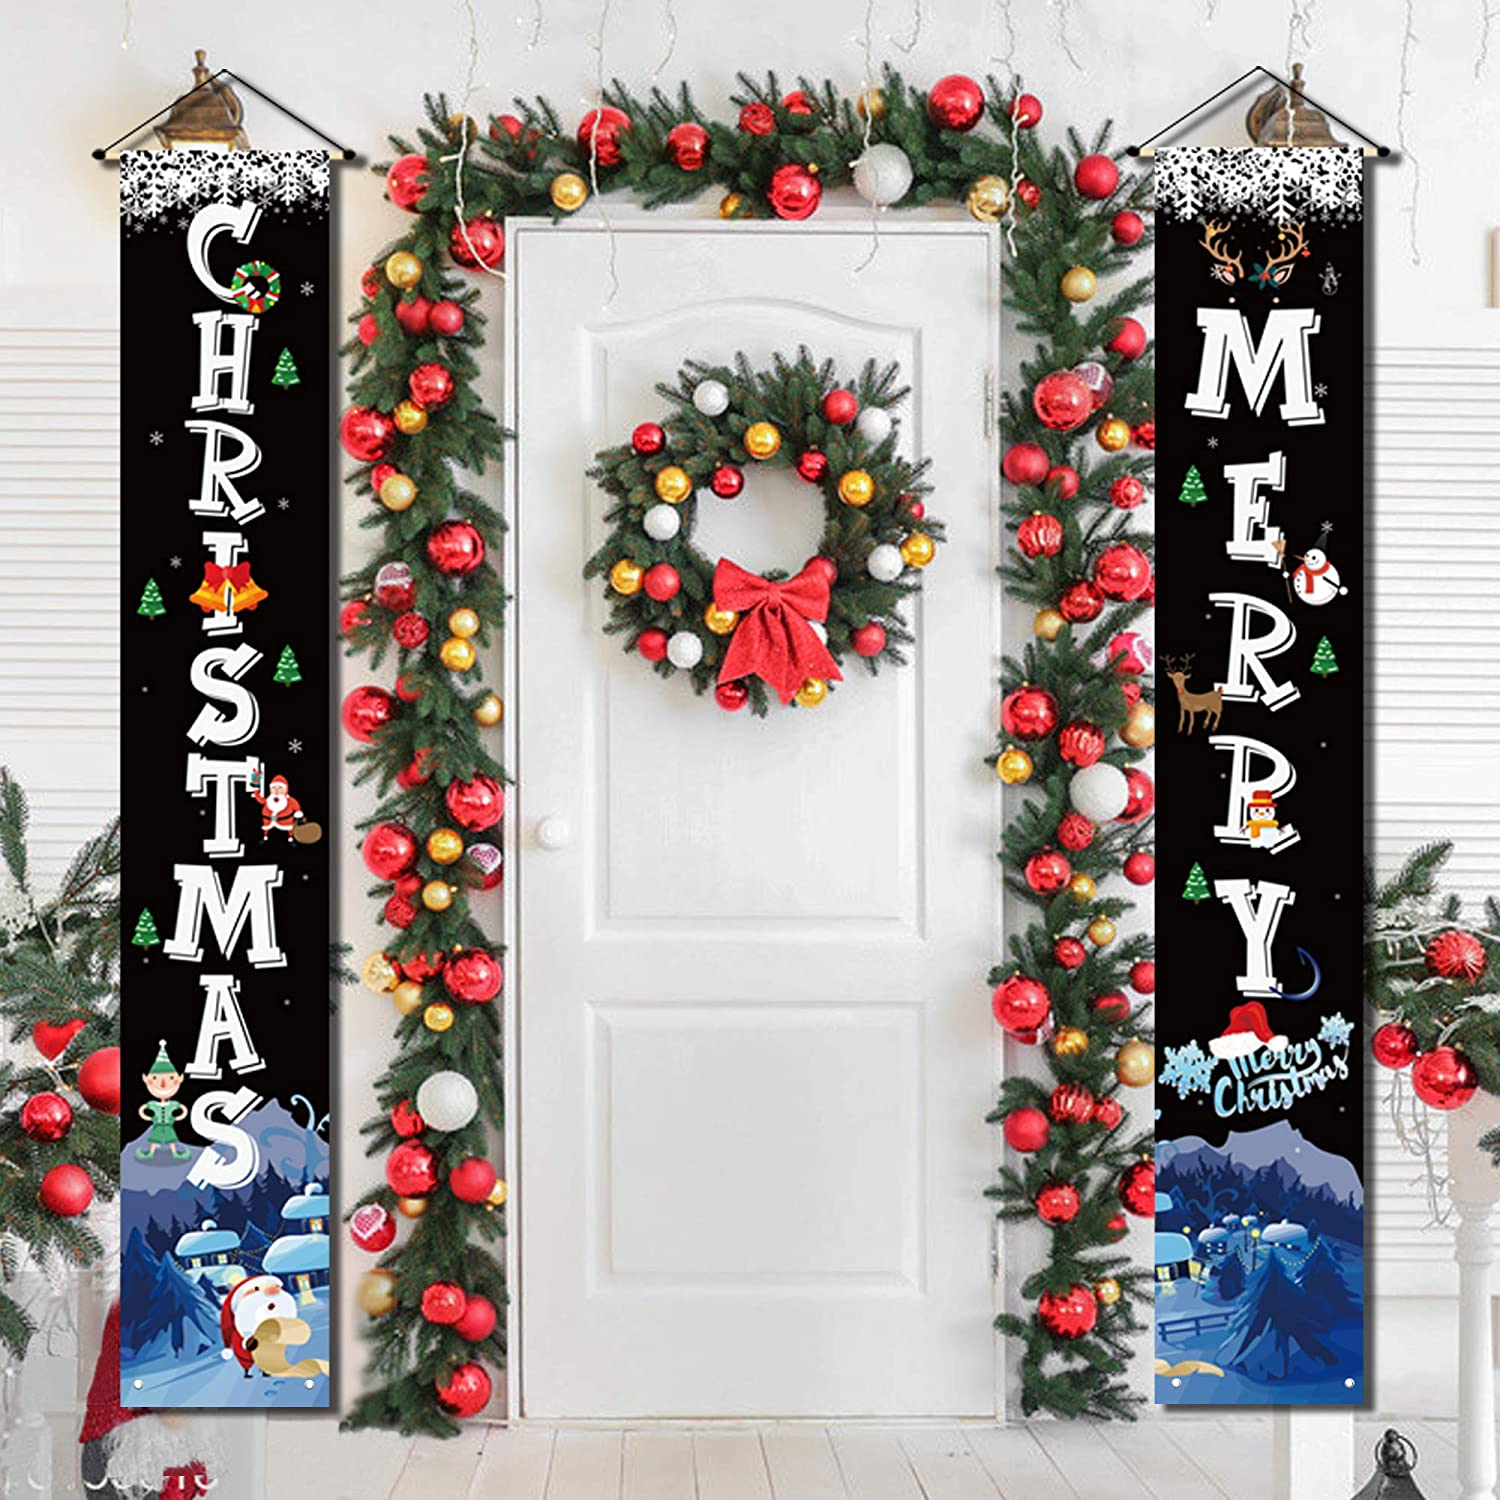 Christmas Porch Decorations for Home Merry Christmas Banner,Christmas Door Decorations Indoor Porch Welcome Sign for Front Door Christmas Decoration Outdoor Flags, Christmas Signs Hanging Decorations